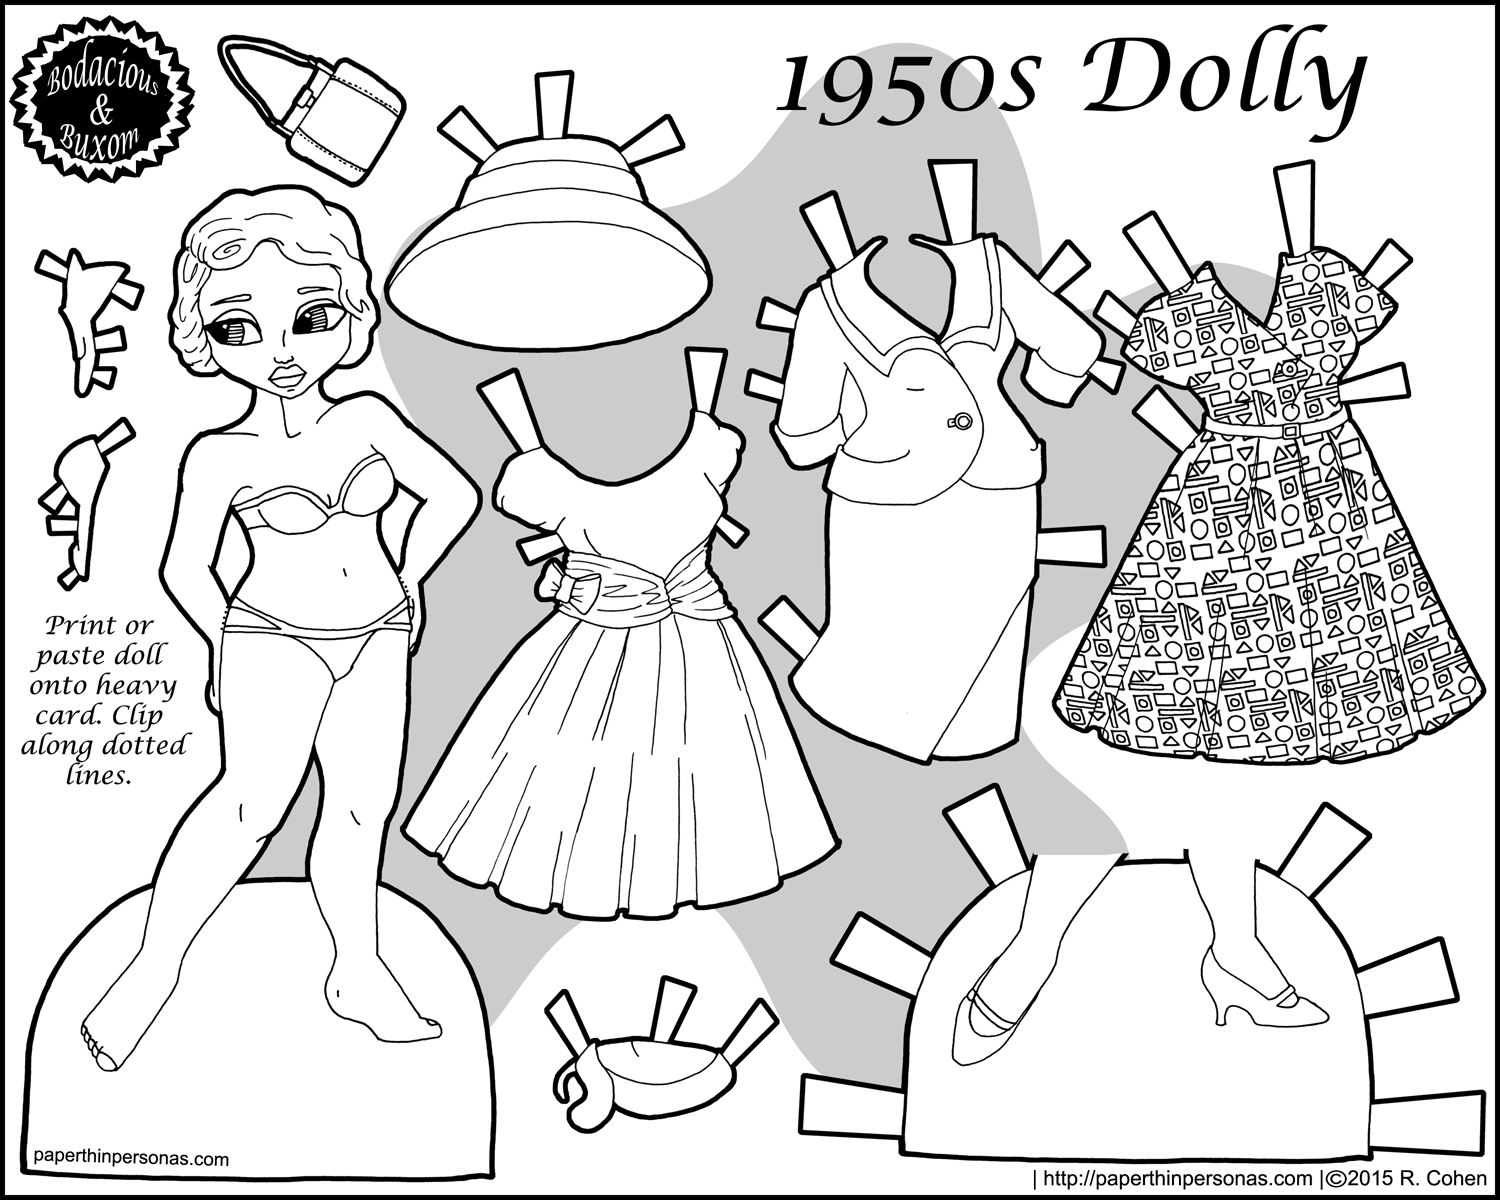 A printable paper doll with a 1950's vintage wardrobe in black and white. She has a suit, a cocktail dress and a day dress.